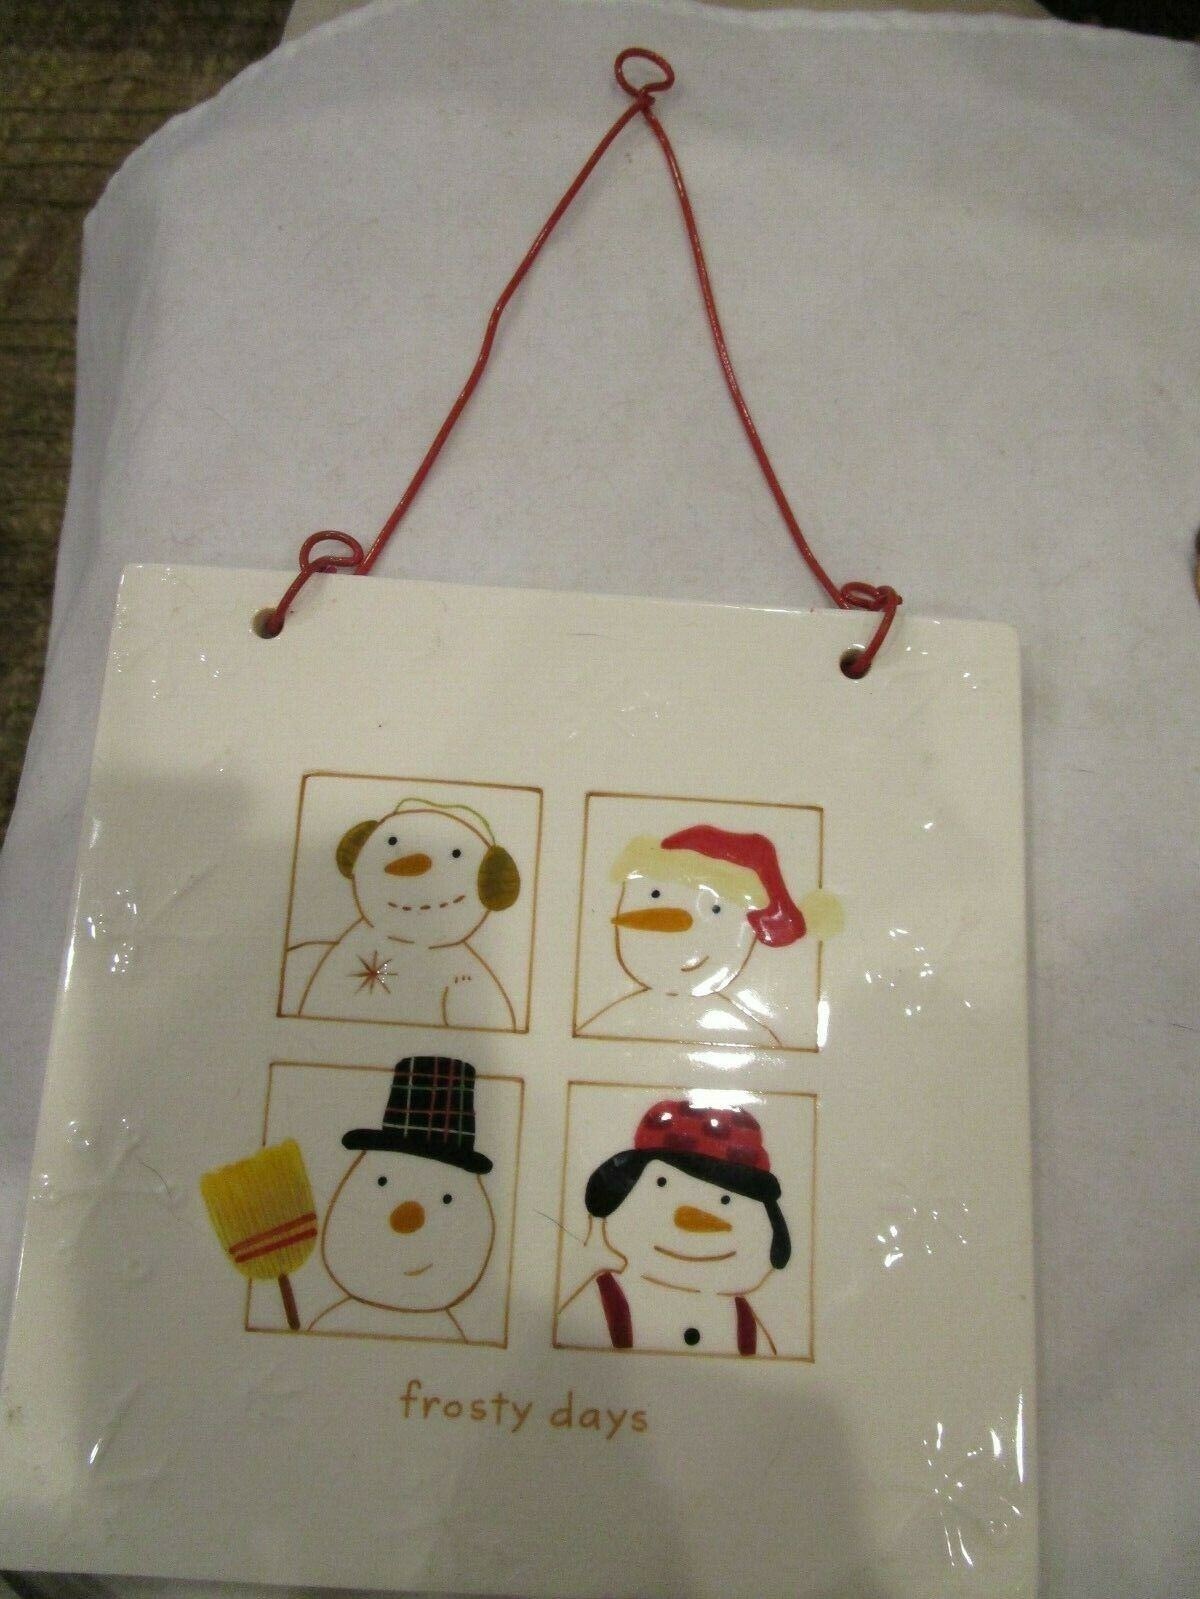 Primary image for Hallmark Snowman Frosty Days Ceramic Trivet Wall Hanging New No Box